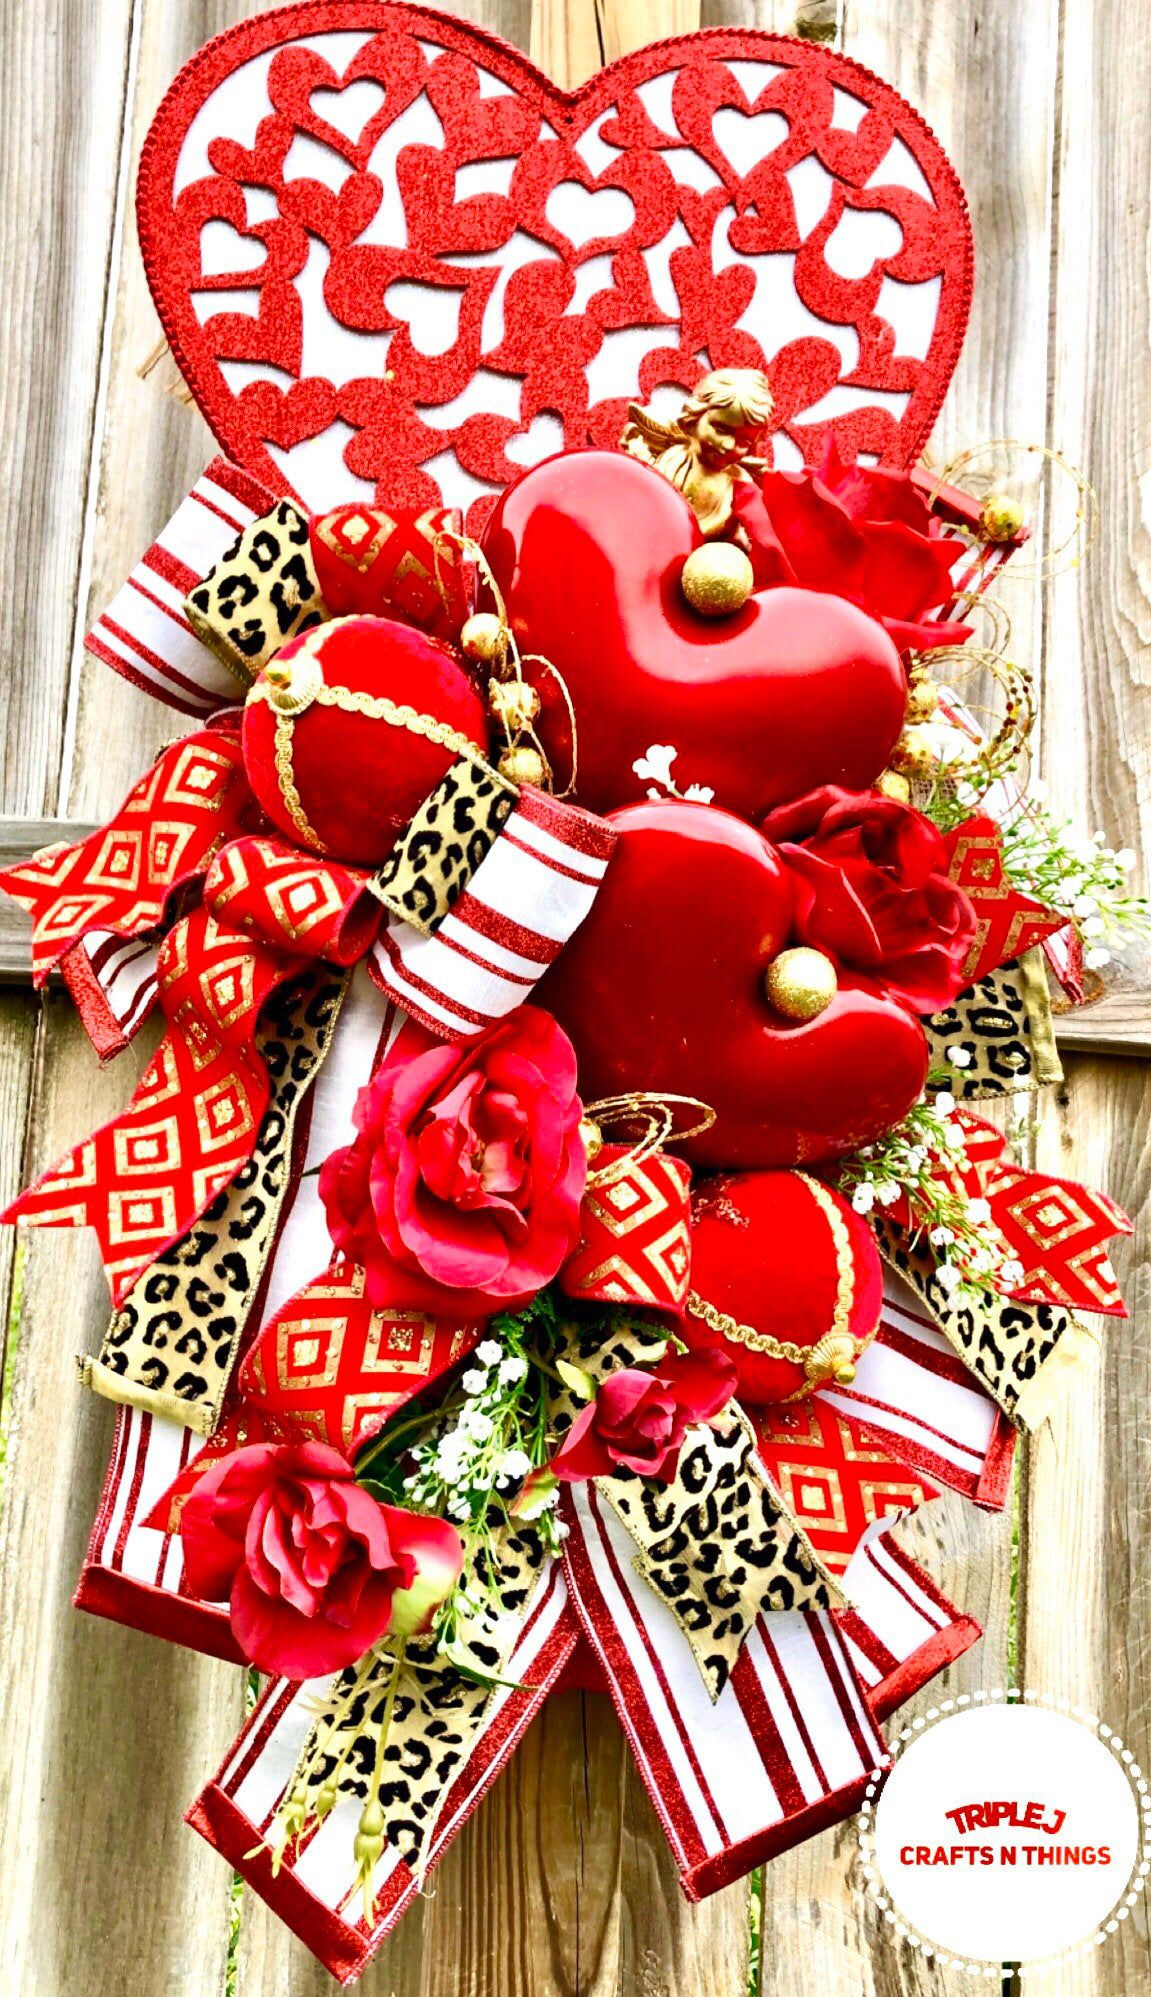 Valentine Wreath Valentine Decor Valentine Door Cupid Decor Valentine Door Hanging Heart Wreath Heart Decor Wedding Decor In 2020 Valentine Wreath Heart Decorations Valentine Decorations